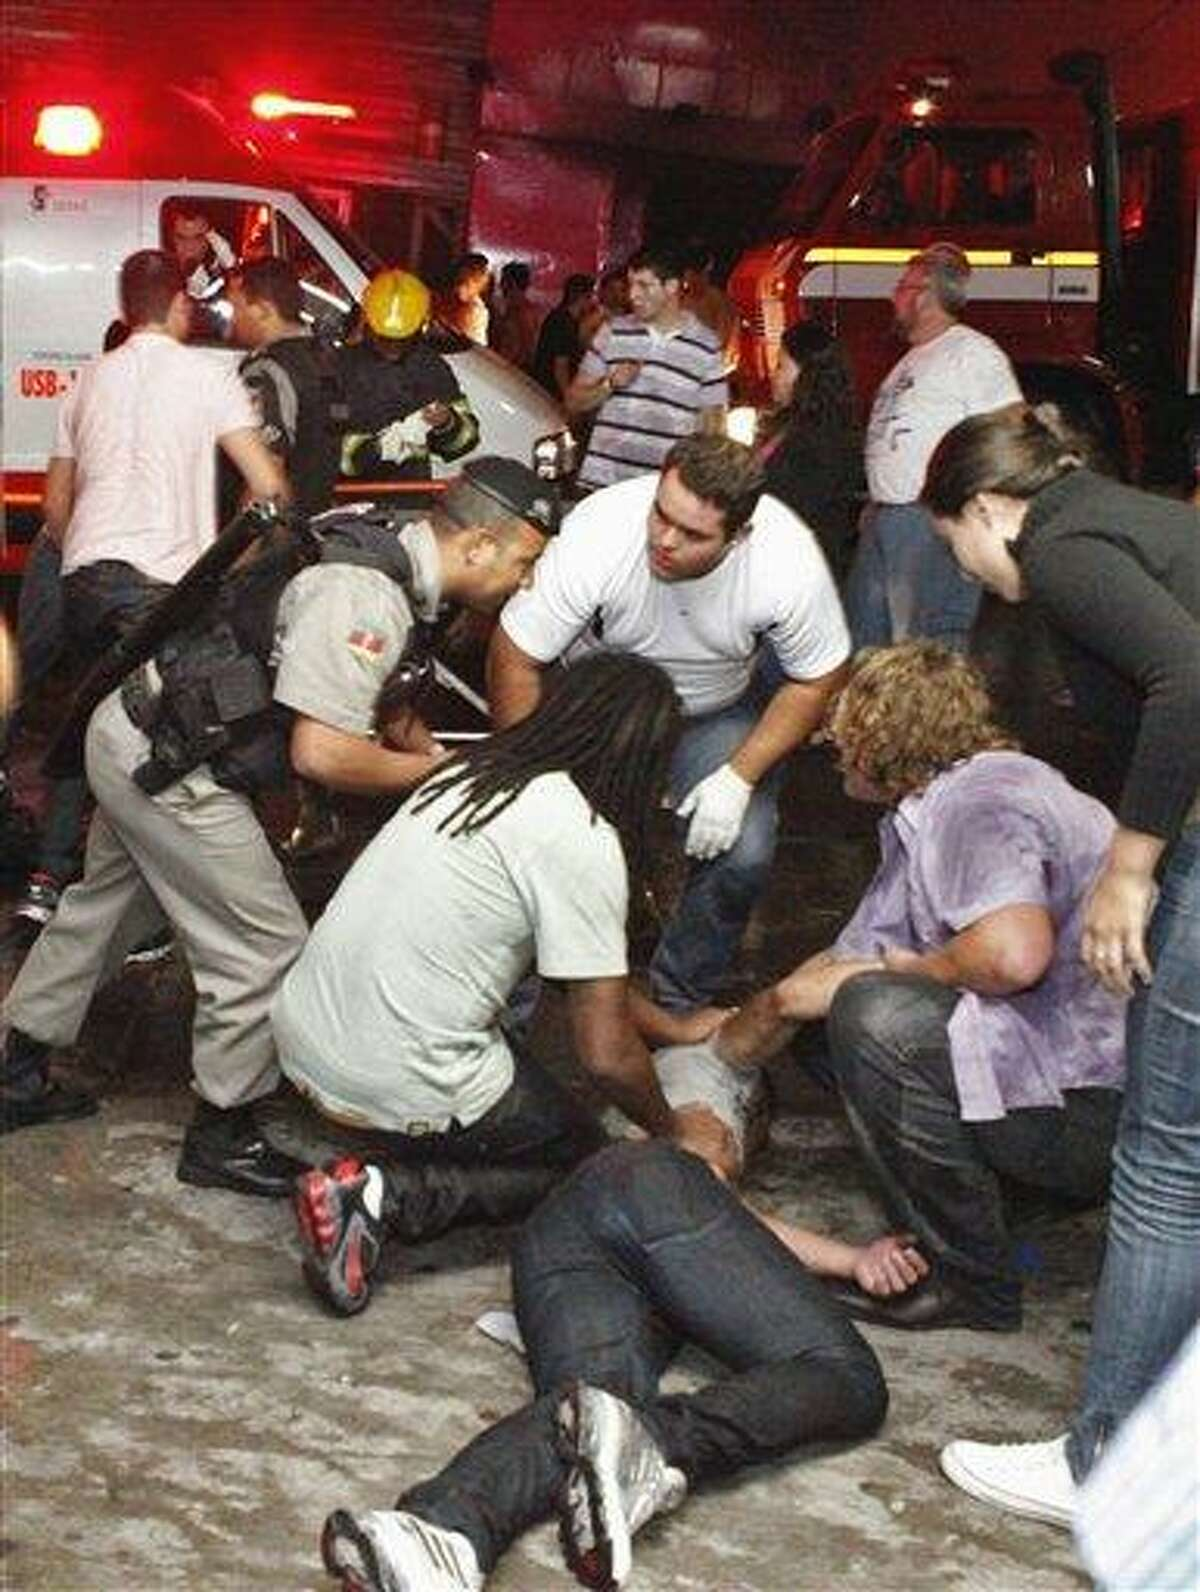 People help an injured man, victim of a fire in a club in Santa Maria city, Rio Grande do Sul state, Brazil, Sunday. According to police more than 200 died in the devastating nightclub fire in southern Brazil. Officials say the fire broke out at the Kiss club in the city of Santa Maria while a band was performing. At least 200 people were also injured. (AP Photo/Agencia RBS)